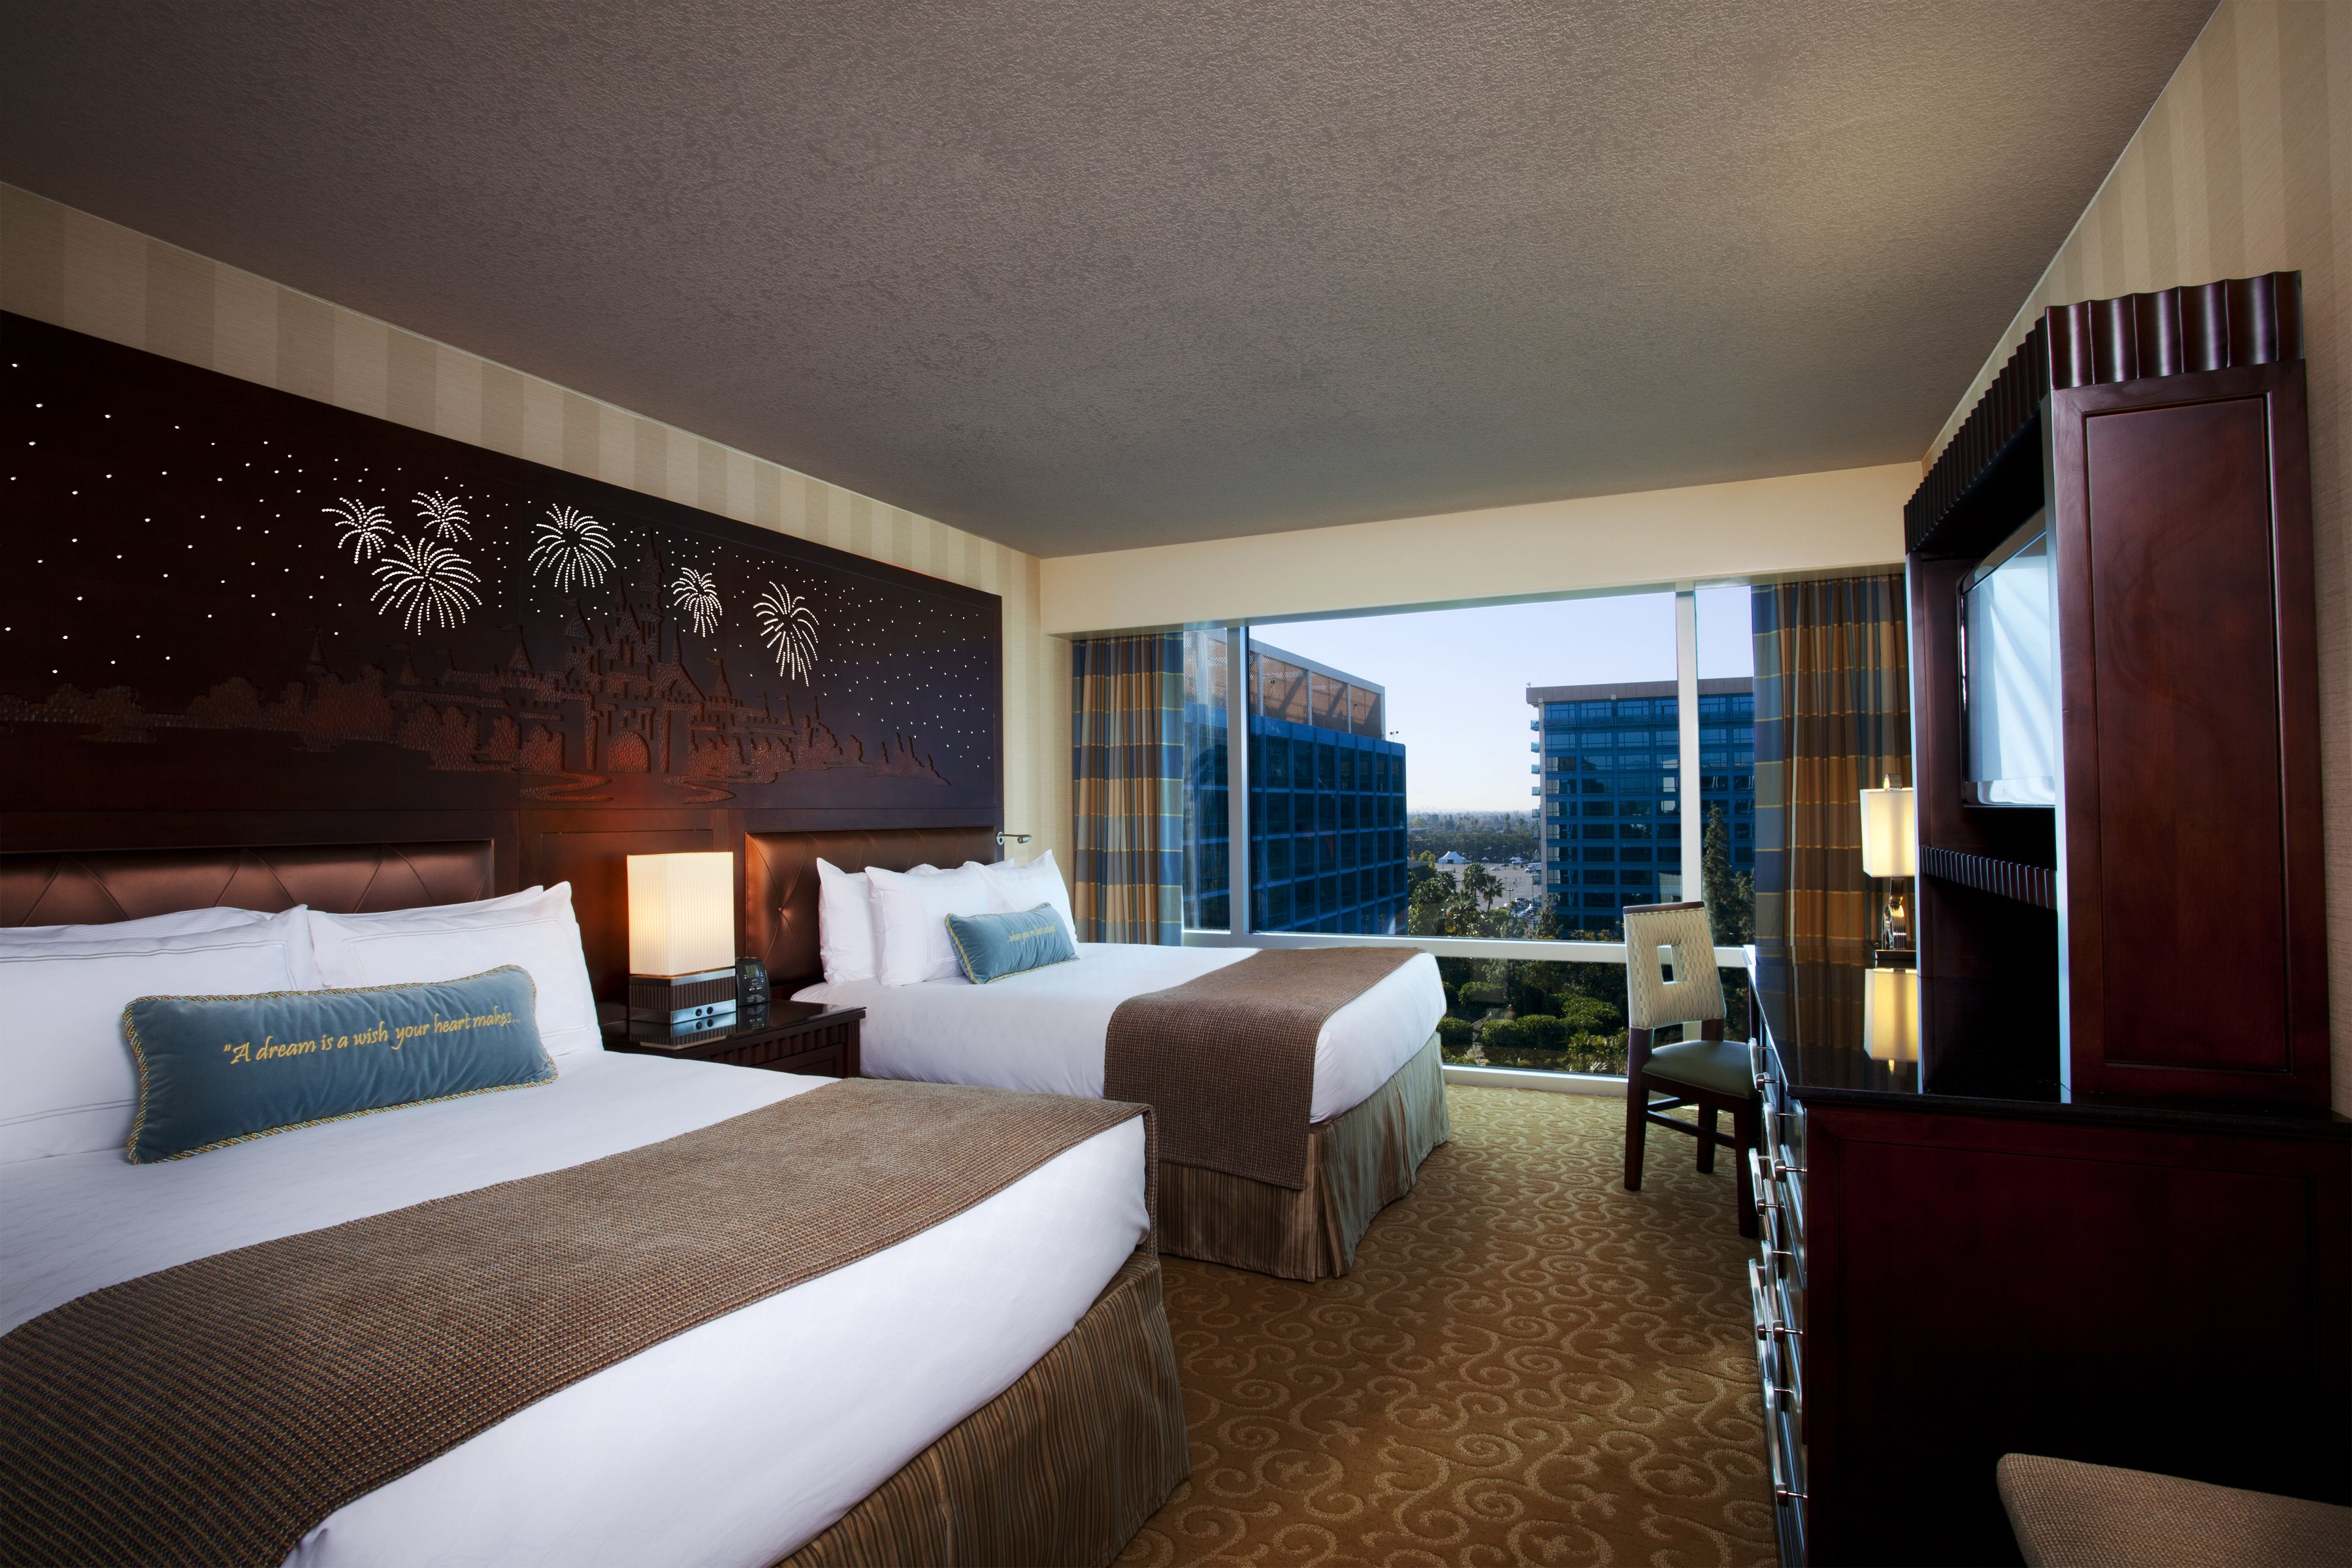 The Disneyland Hotel Guest Rooms At The Disneyland Resort Have